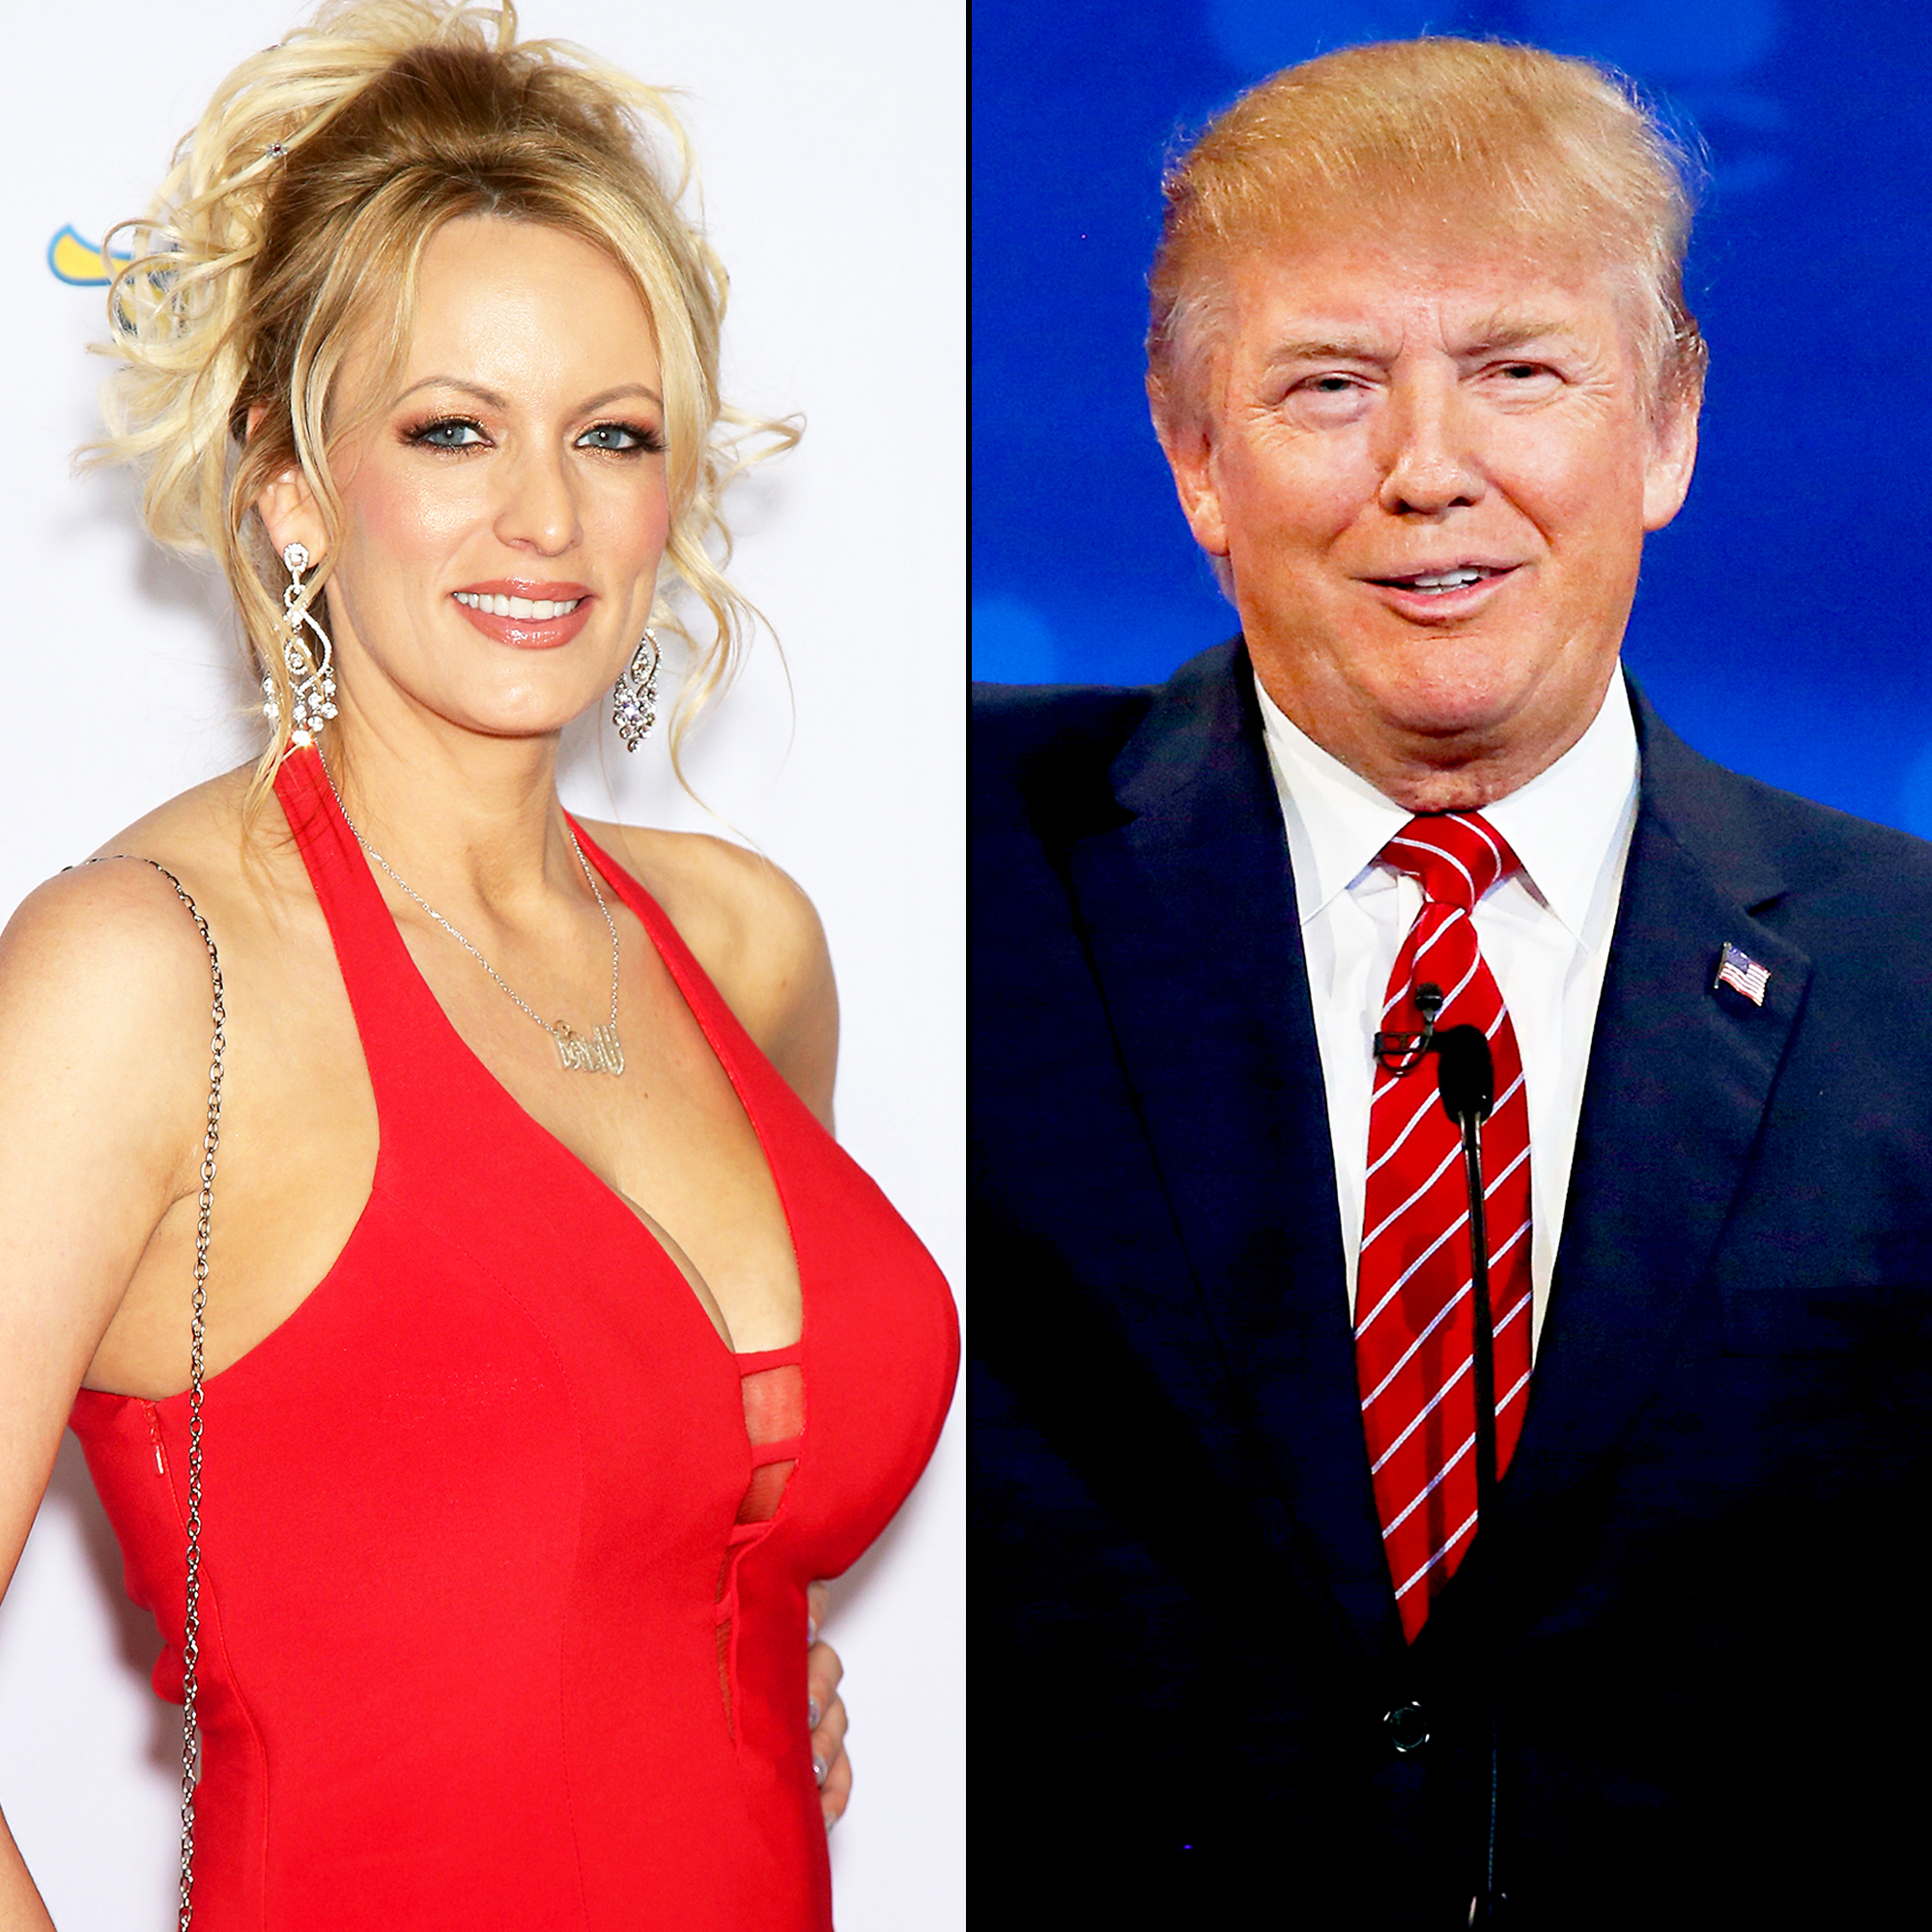 Stormy Daniels interview to air on '60 Minutes' this month